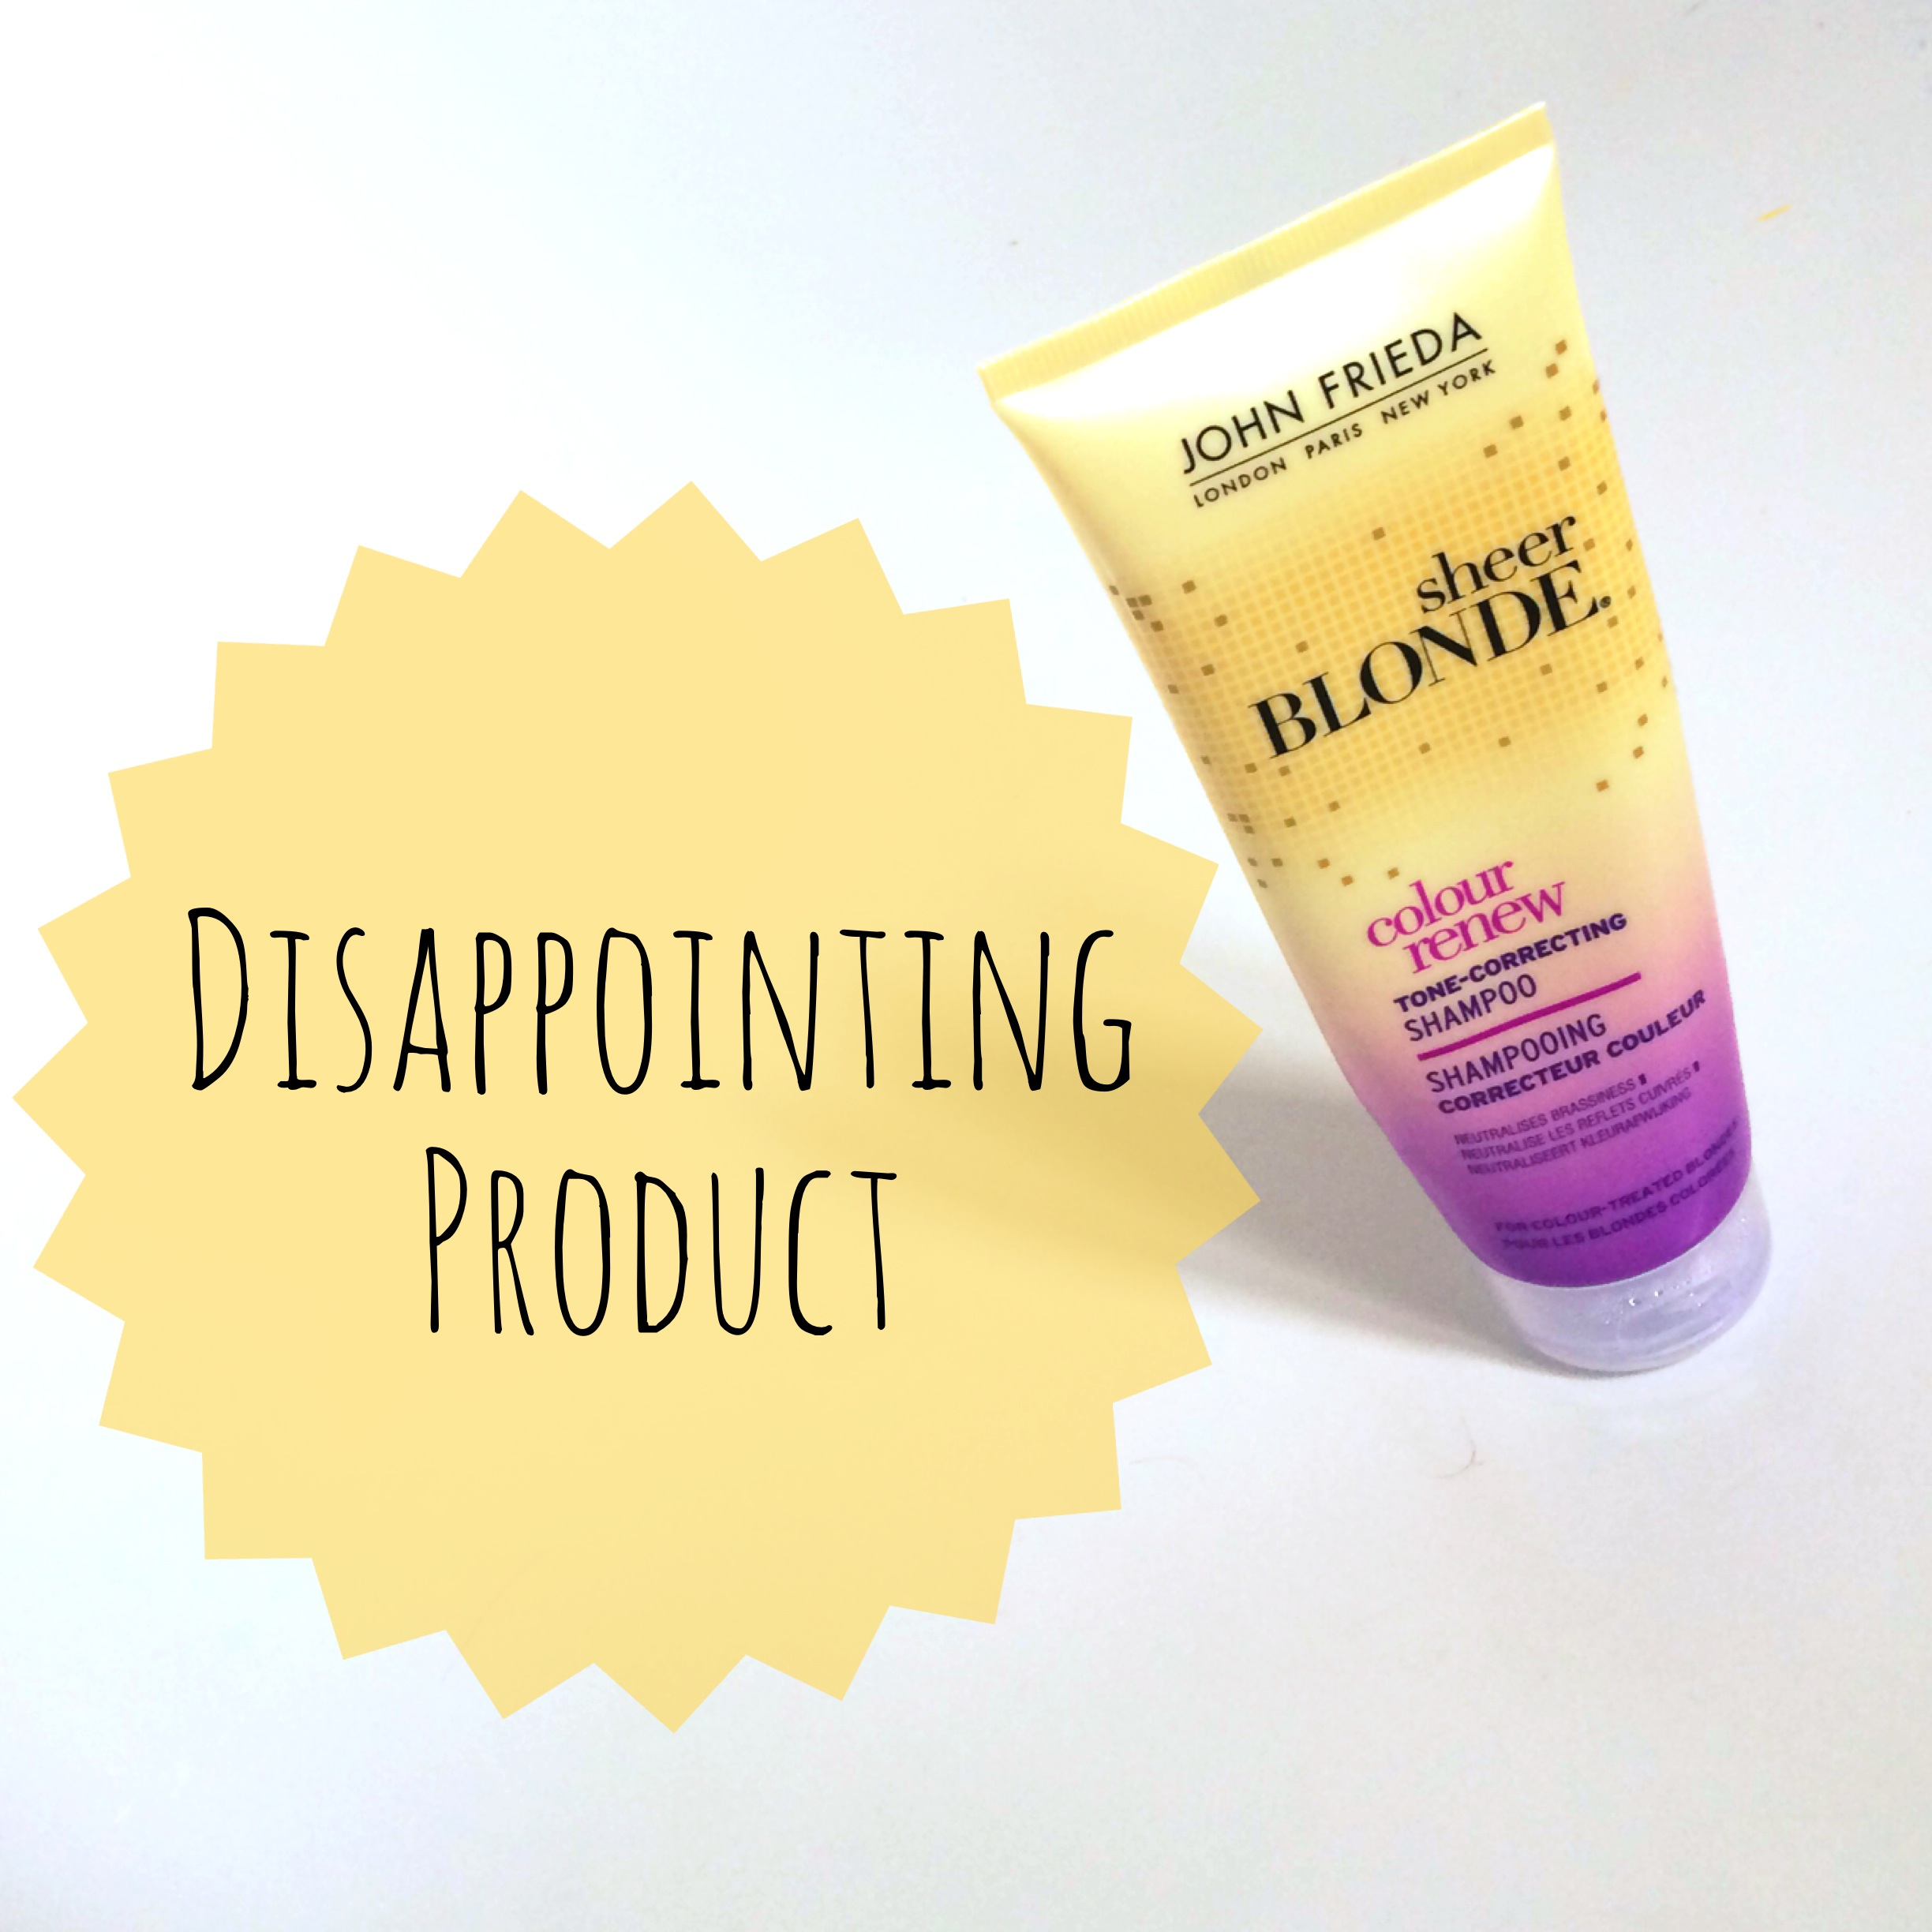 Disappointing Product John Frieda Sheer Blonde Colour